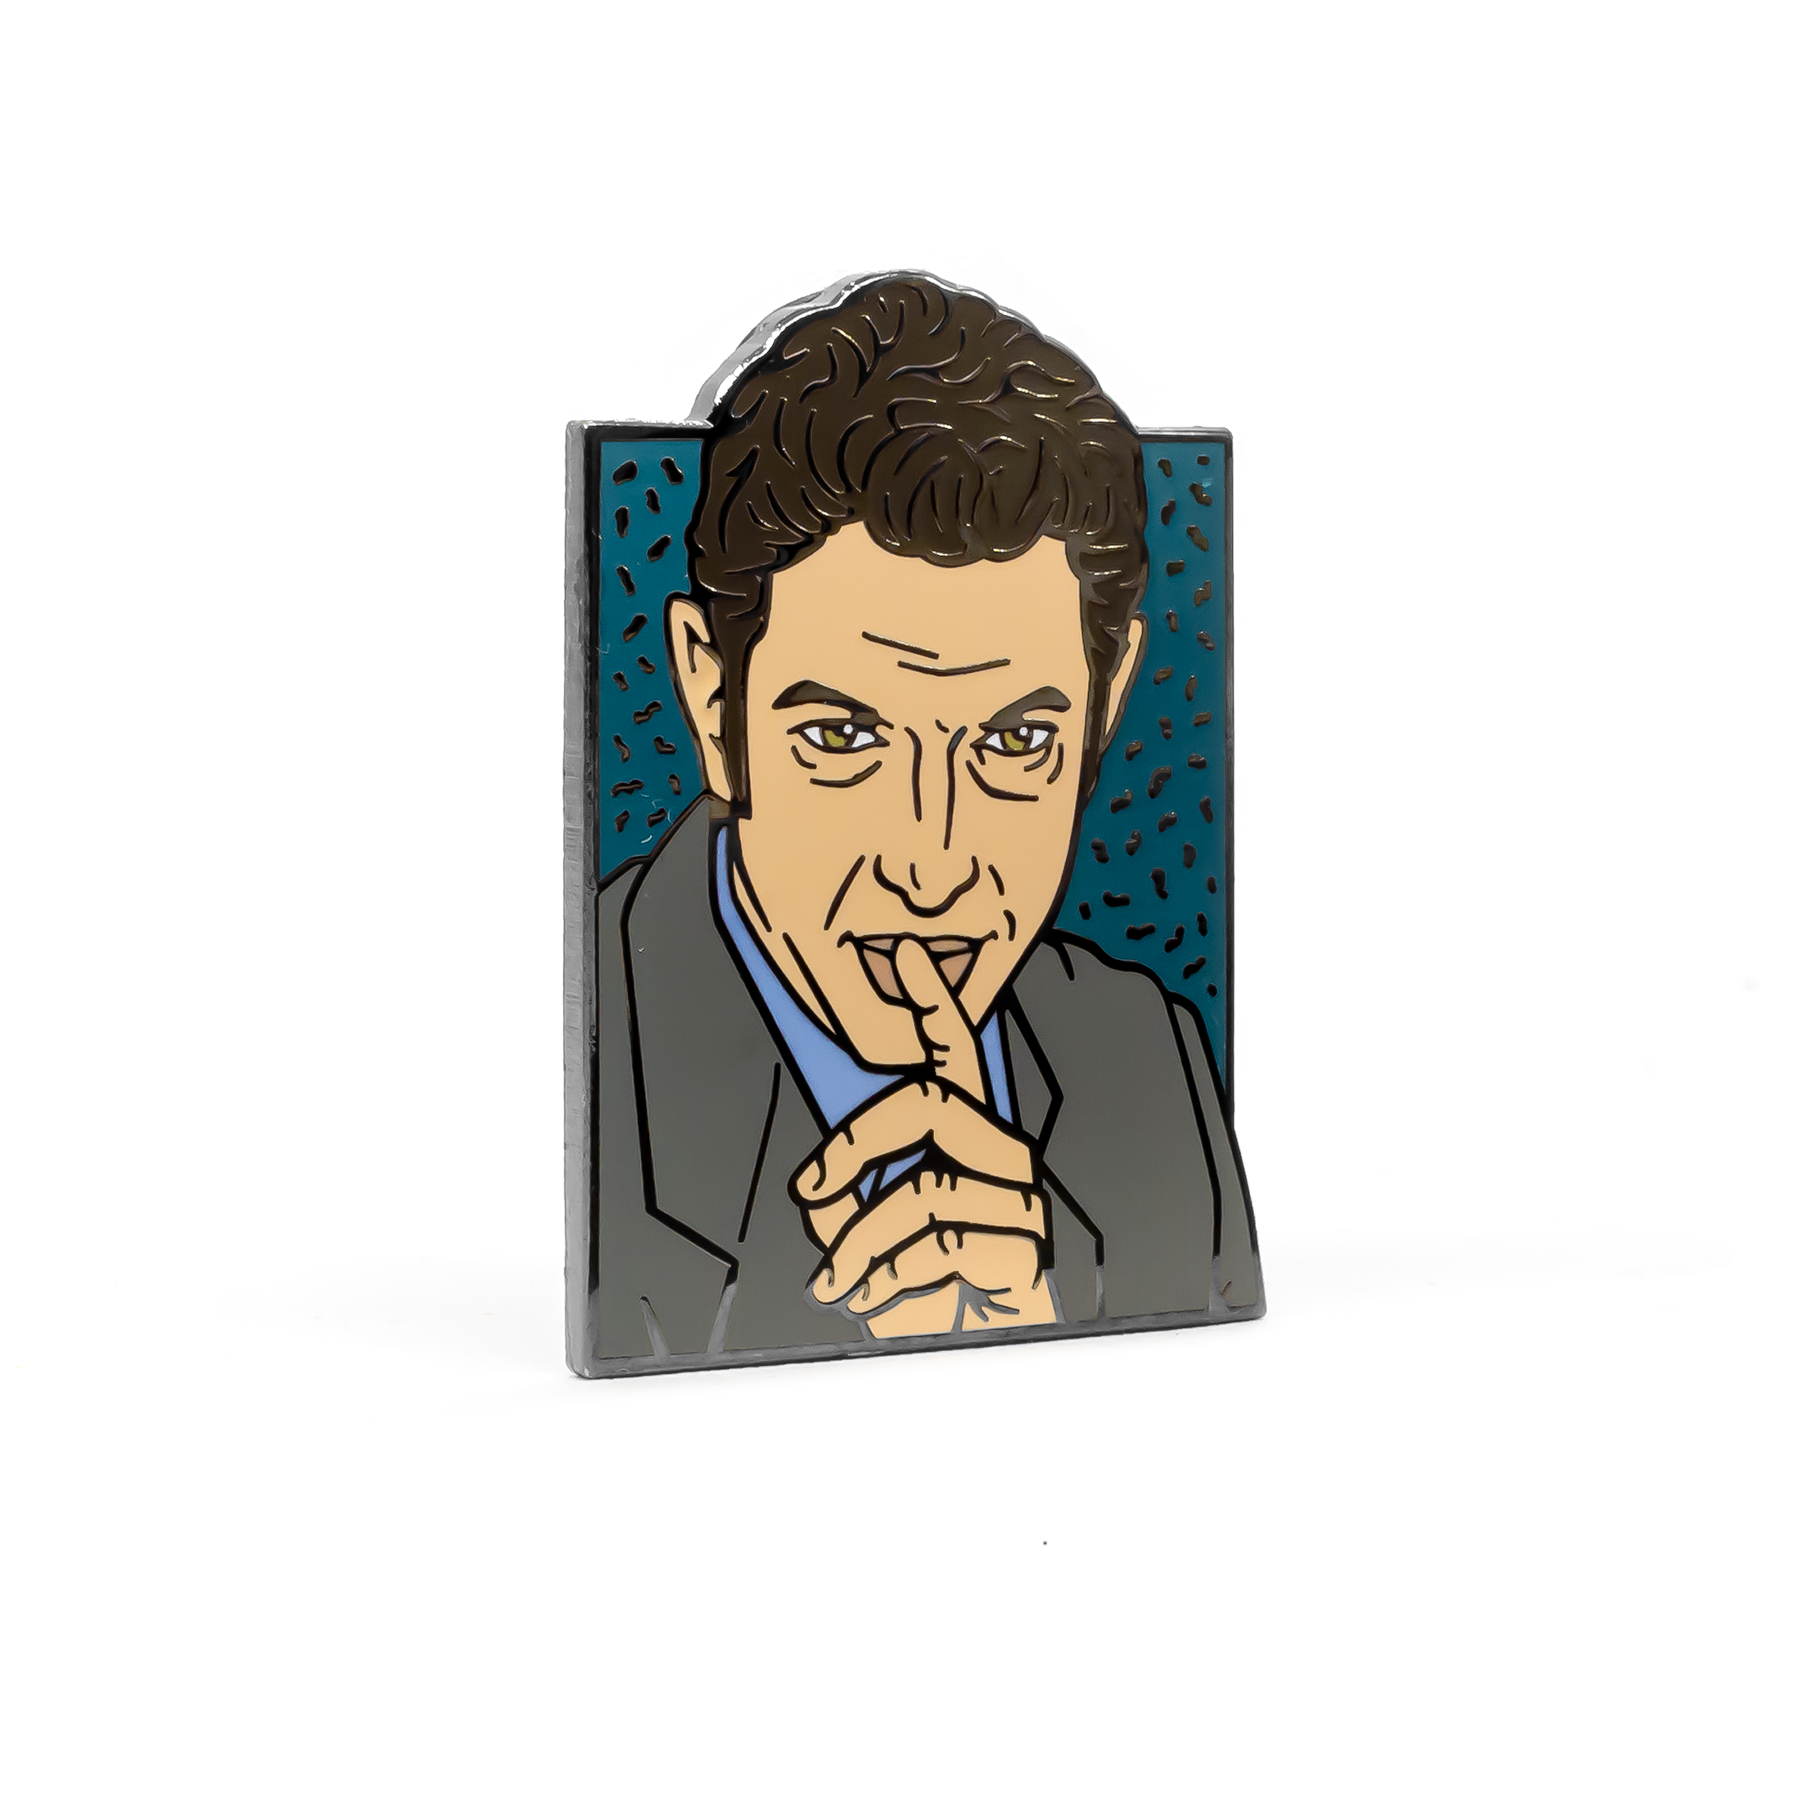 Jeff Goldblum enamel pin